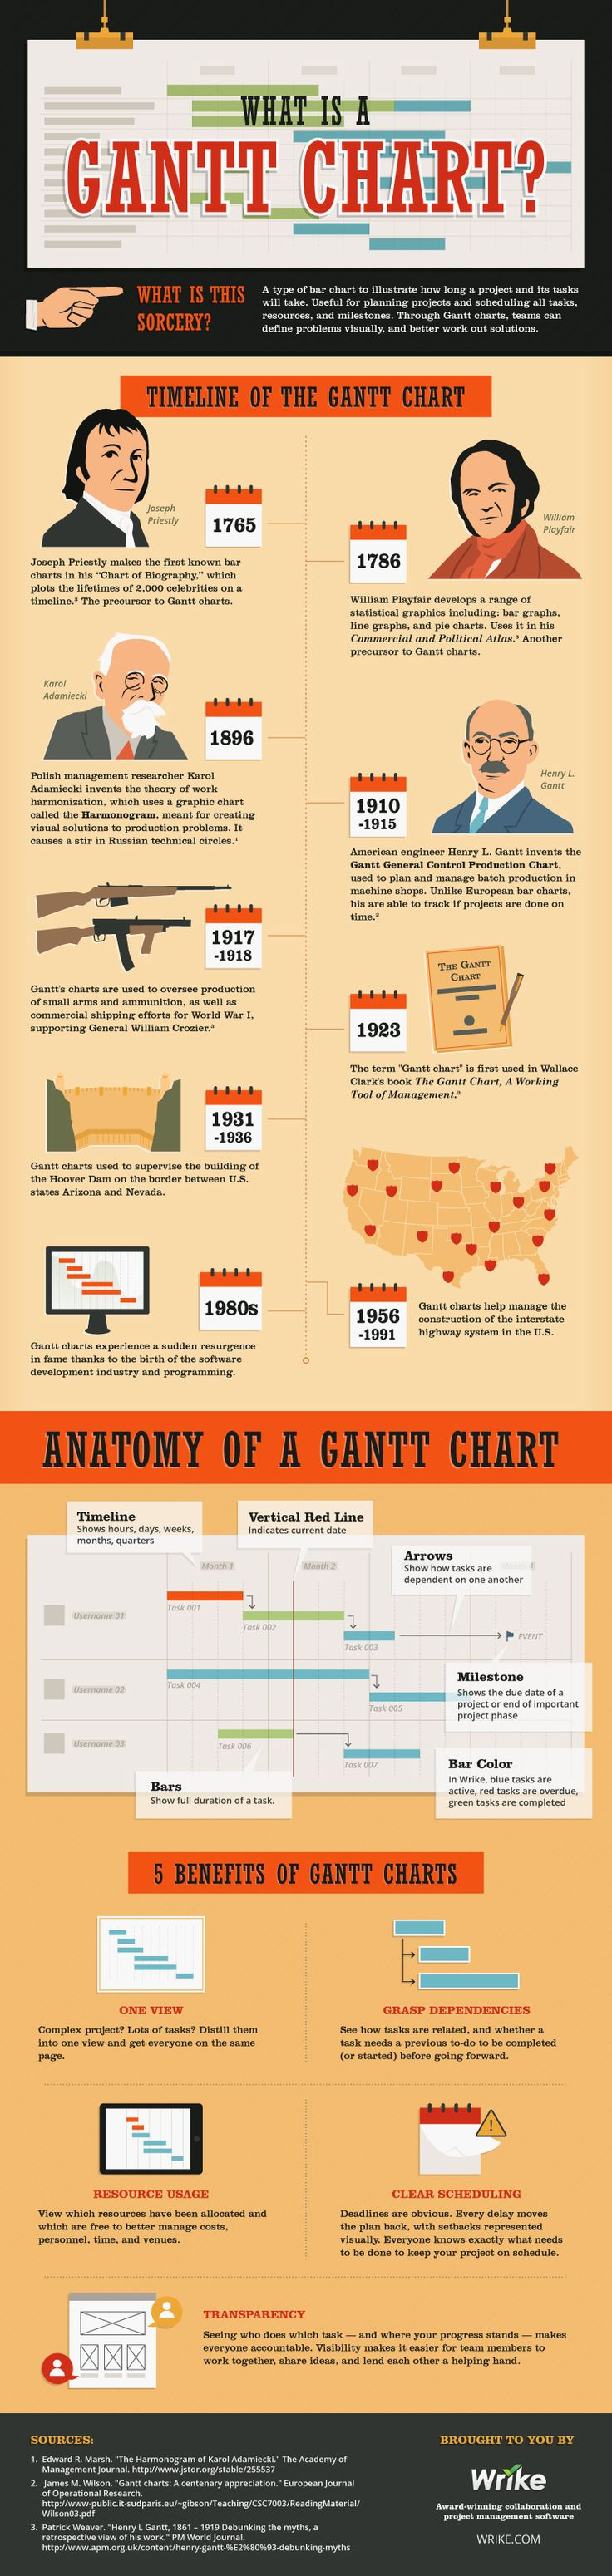 Infographic-What-Is-A-Gantt-Chart-Wrike... - JobLoving.com   Your ...